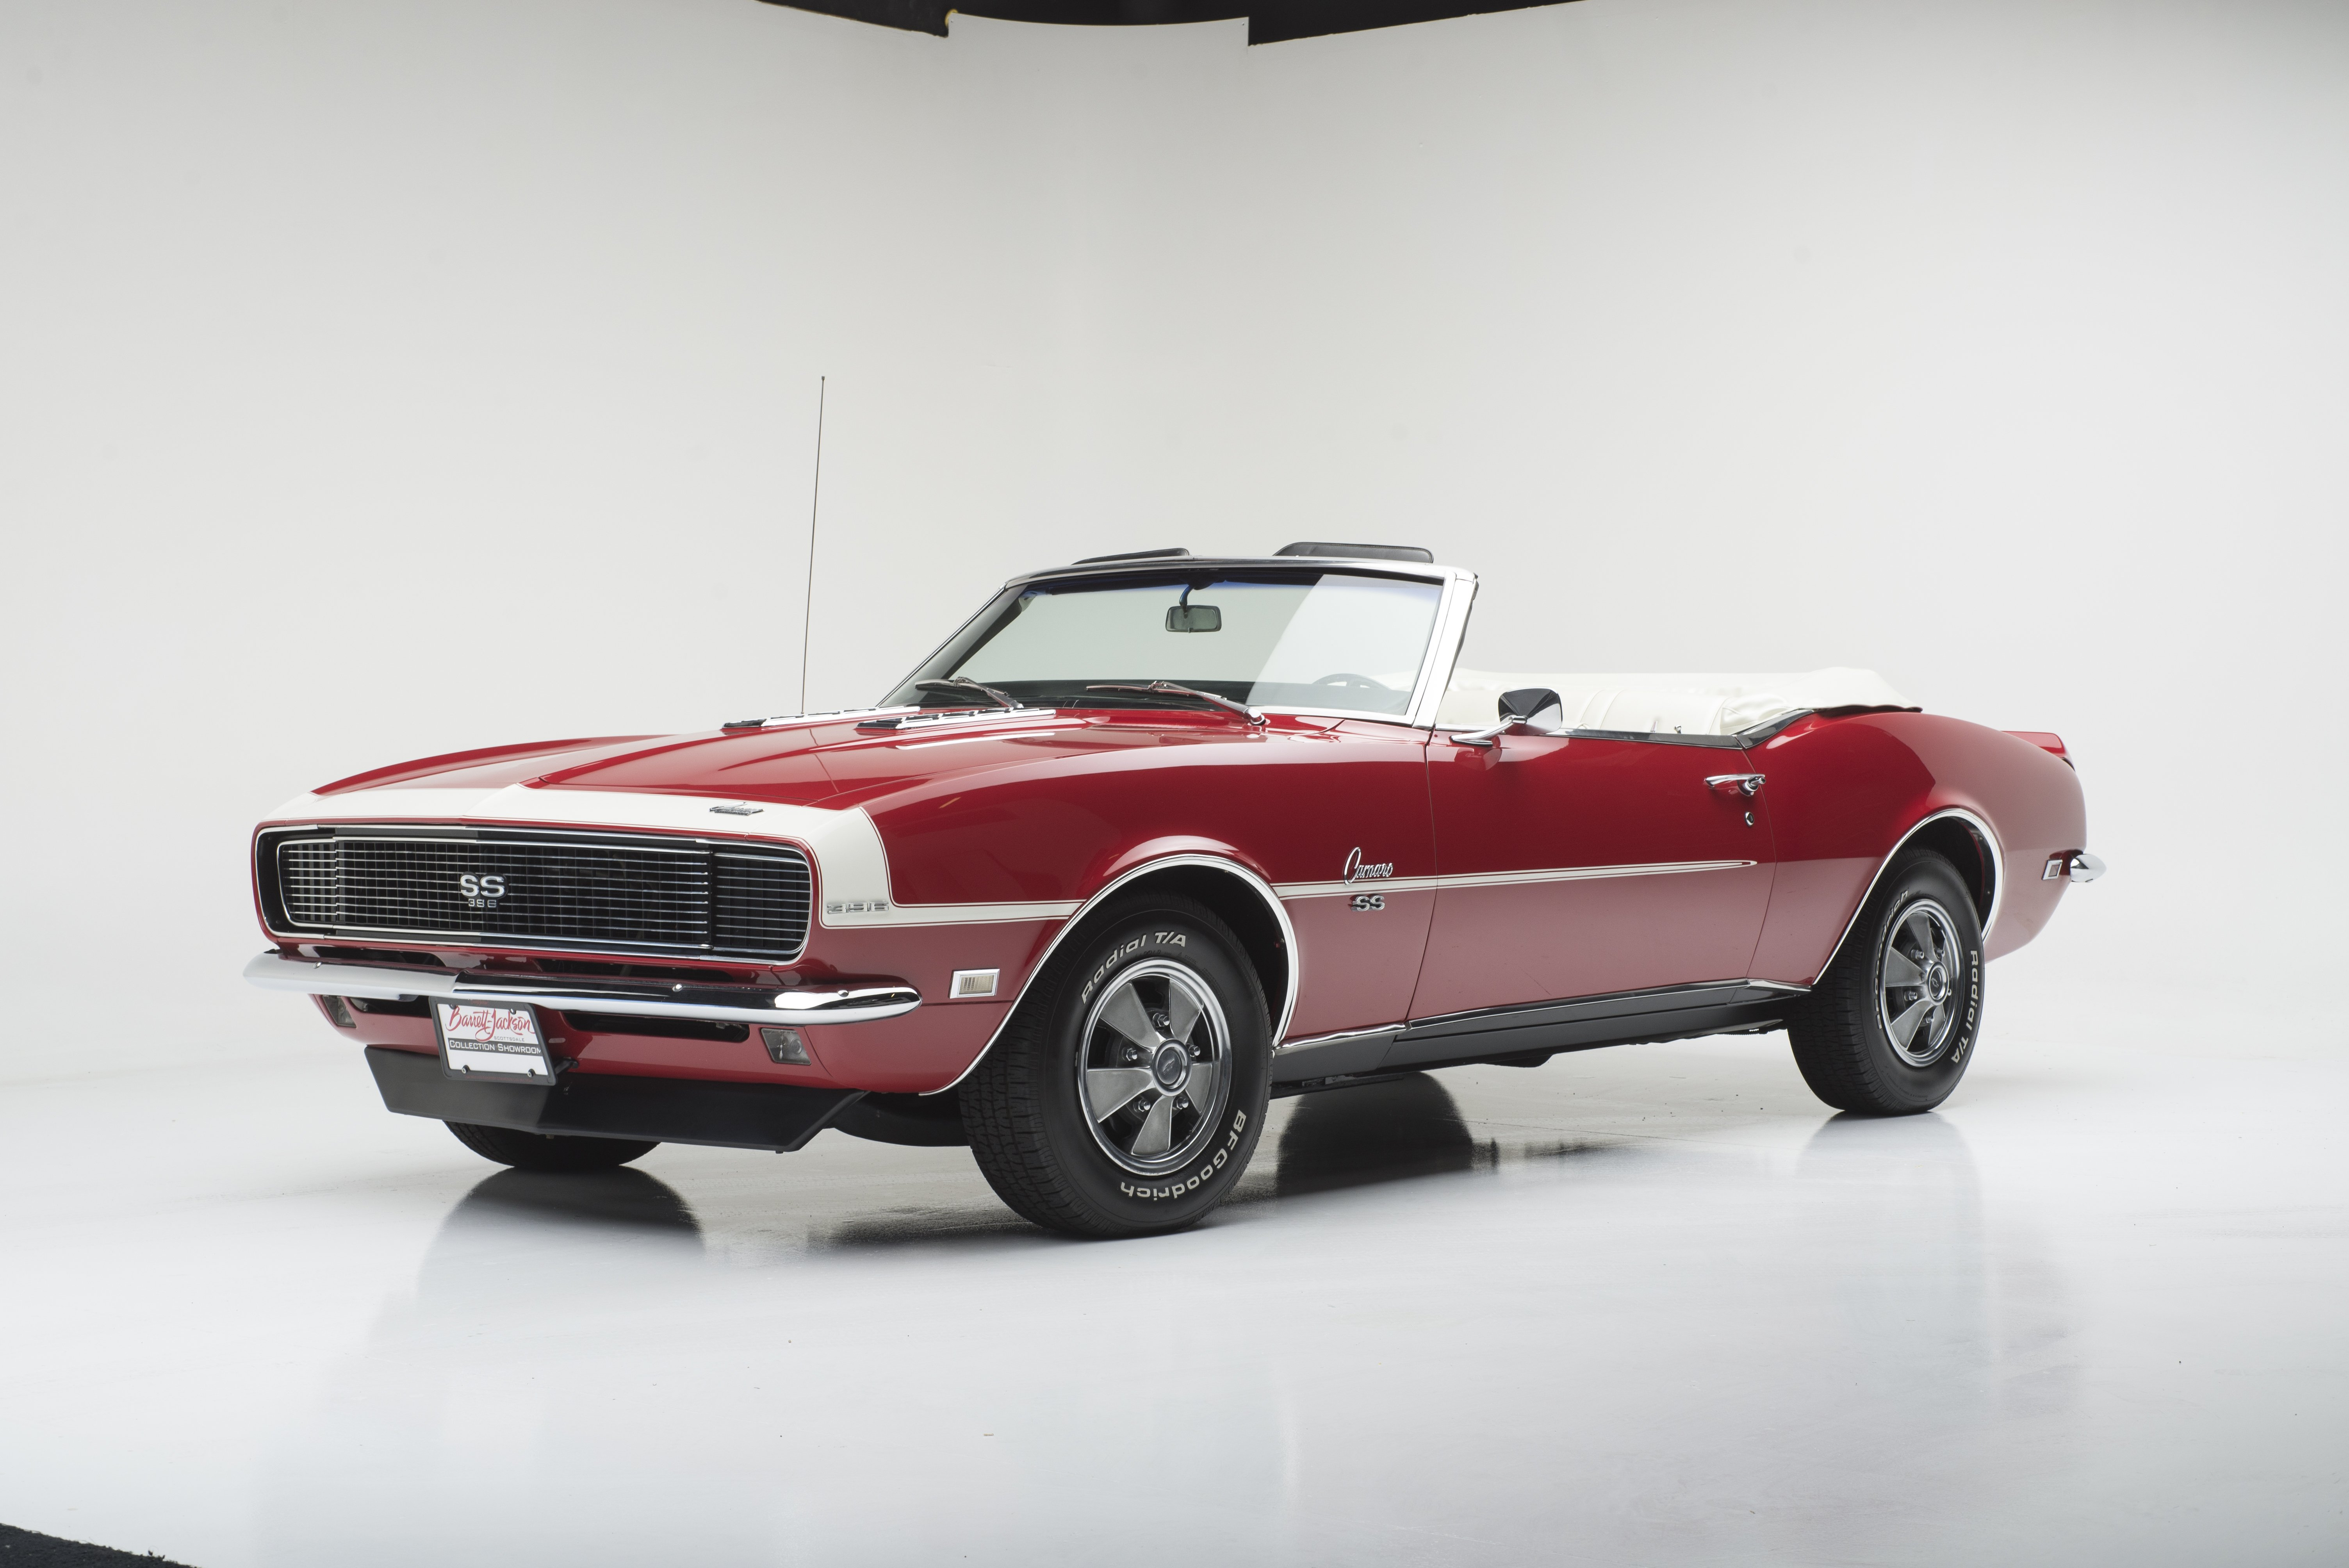 1968 Chevy Camaro Rs Ss Convertible Muscle Classic S R F Wallpaper 6016x4016 711304 Wallpaperup